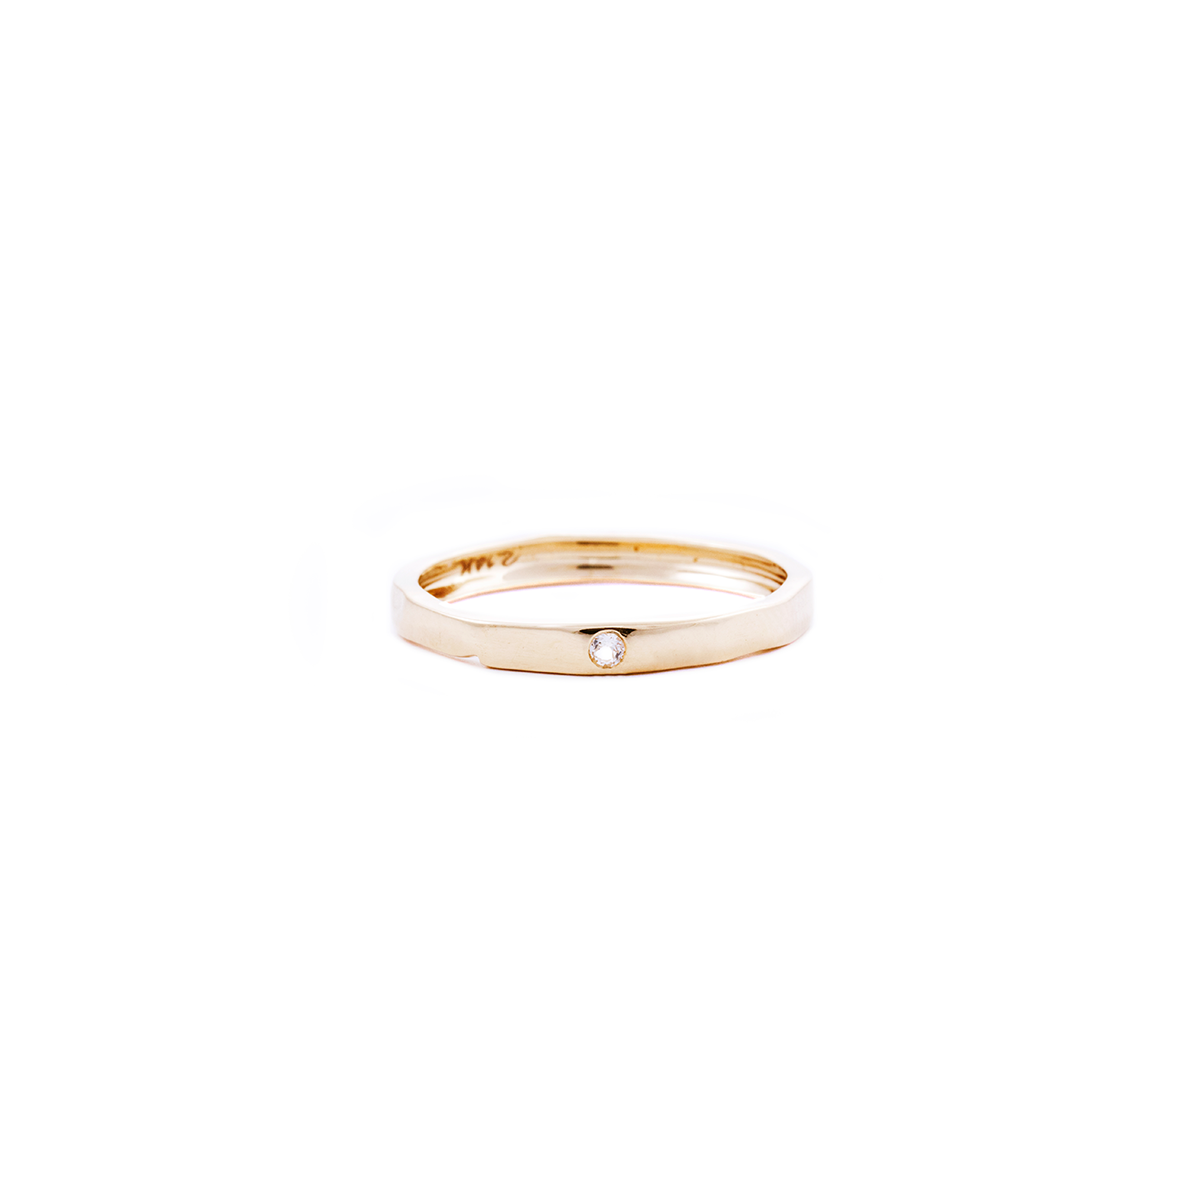 white topaz gold ring, stacking ring, rings, gold jewellery, gold jewelry, jewellery store, online jewelry store, jewellers